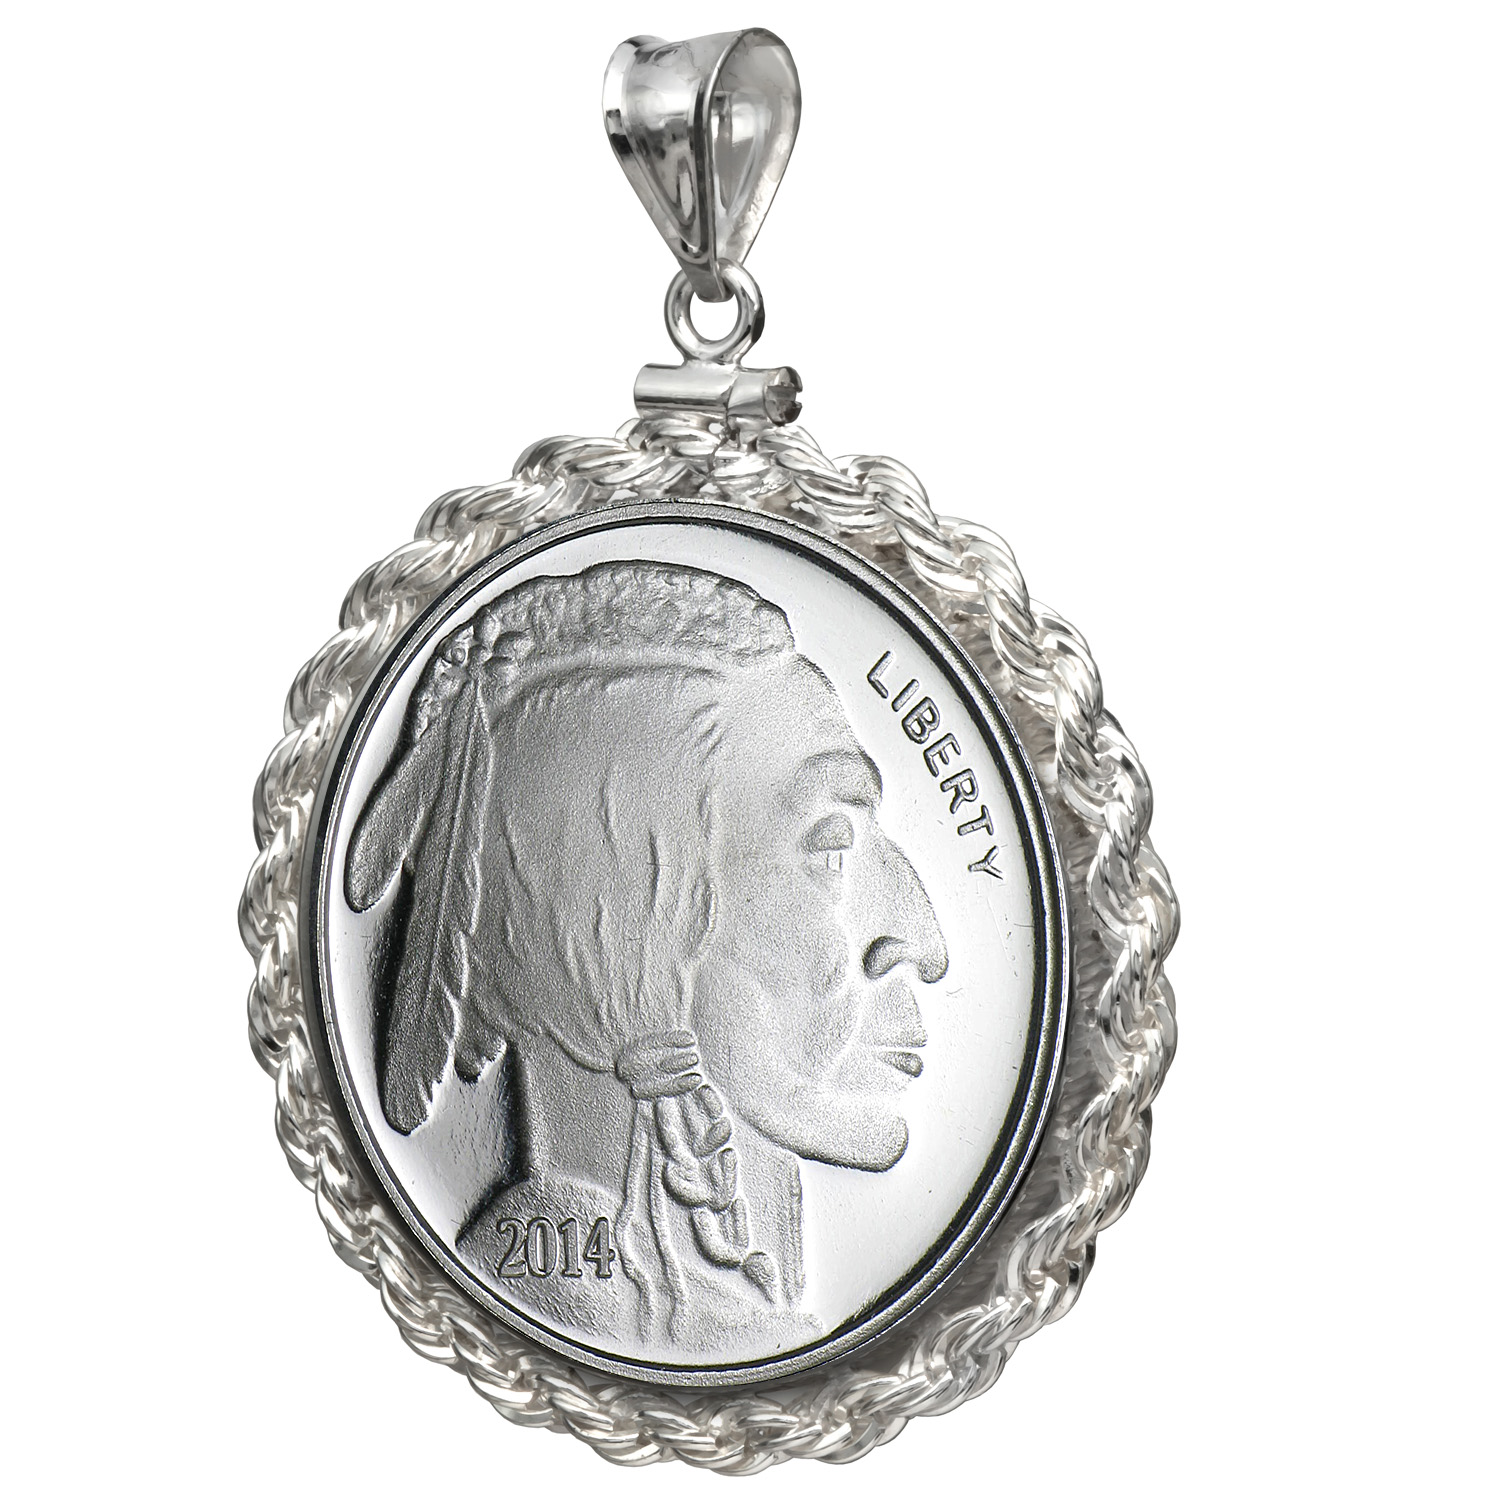 2014 1/2 oz Silver Buffalo Round Pendant (Rope-ScrewTop Bezel)